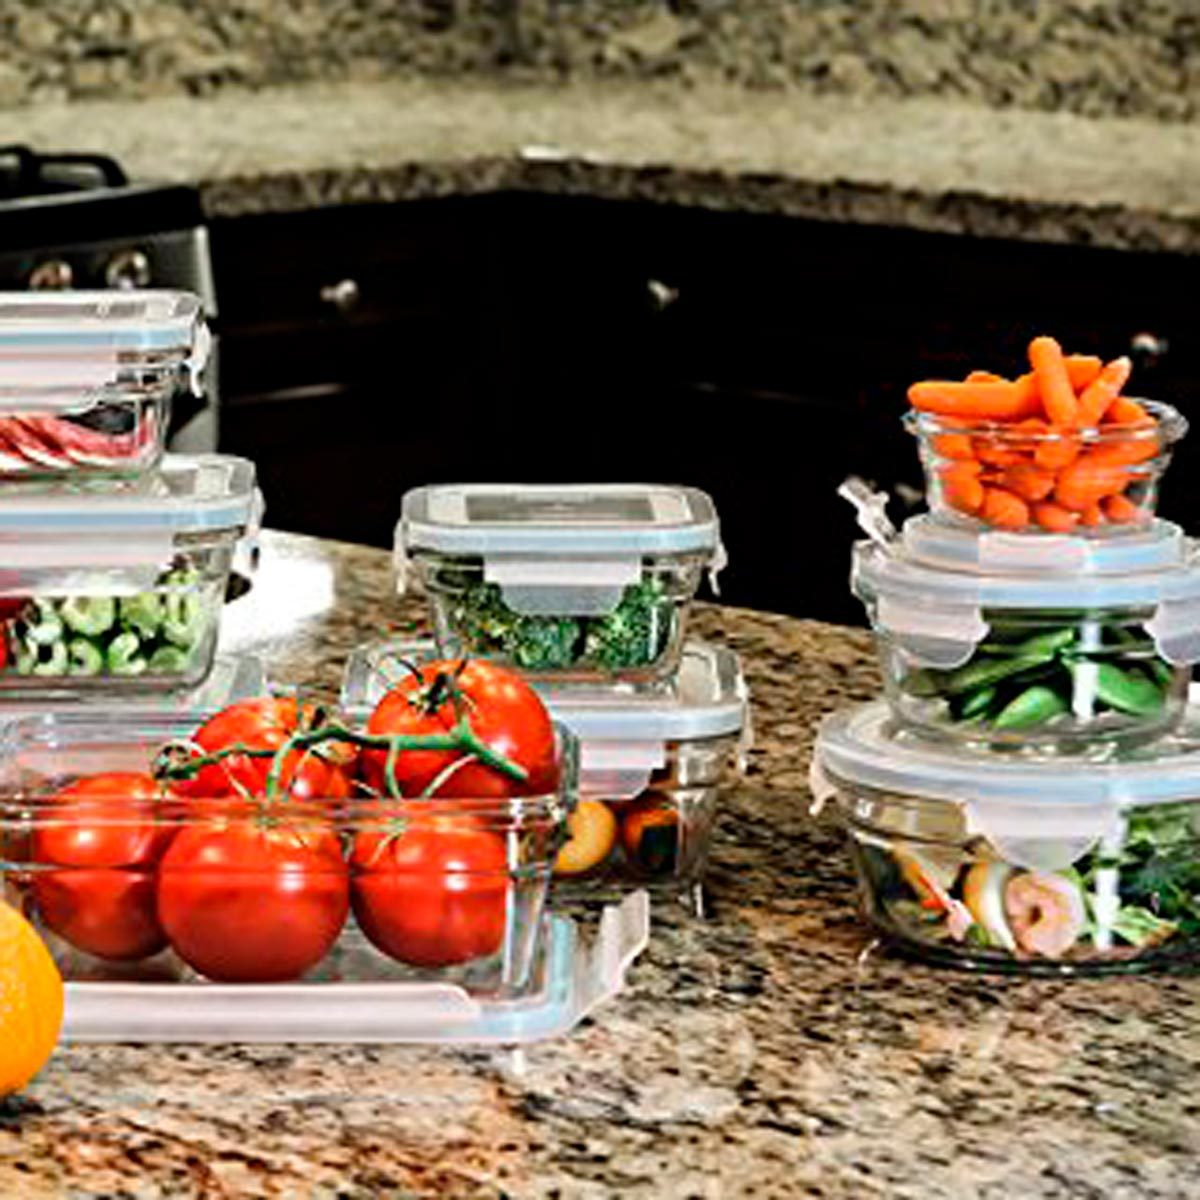 Glasslock 18-Piece Oven-Safe Container Set